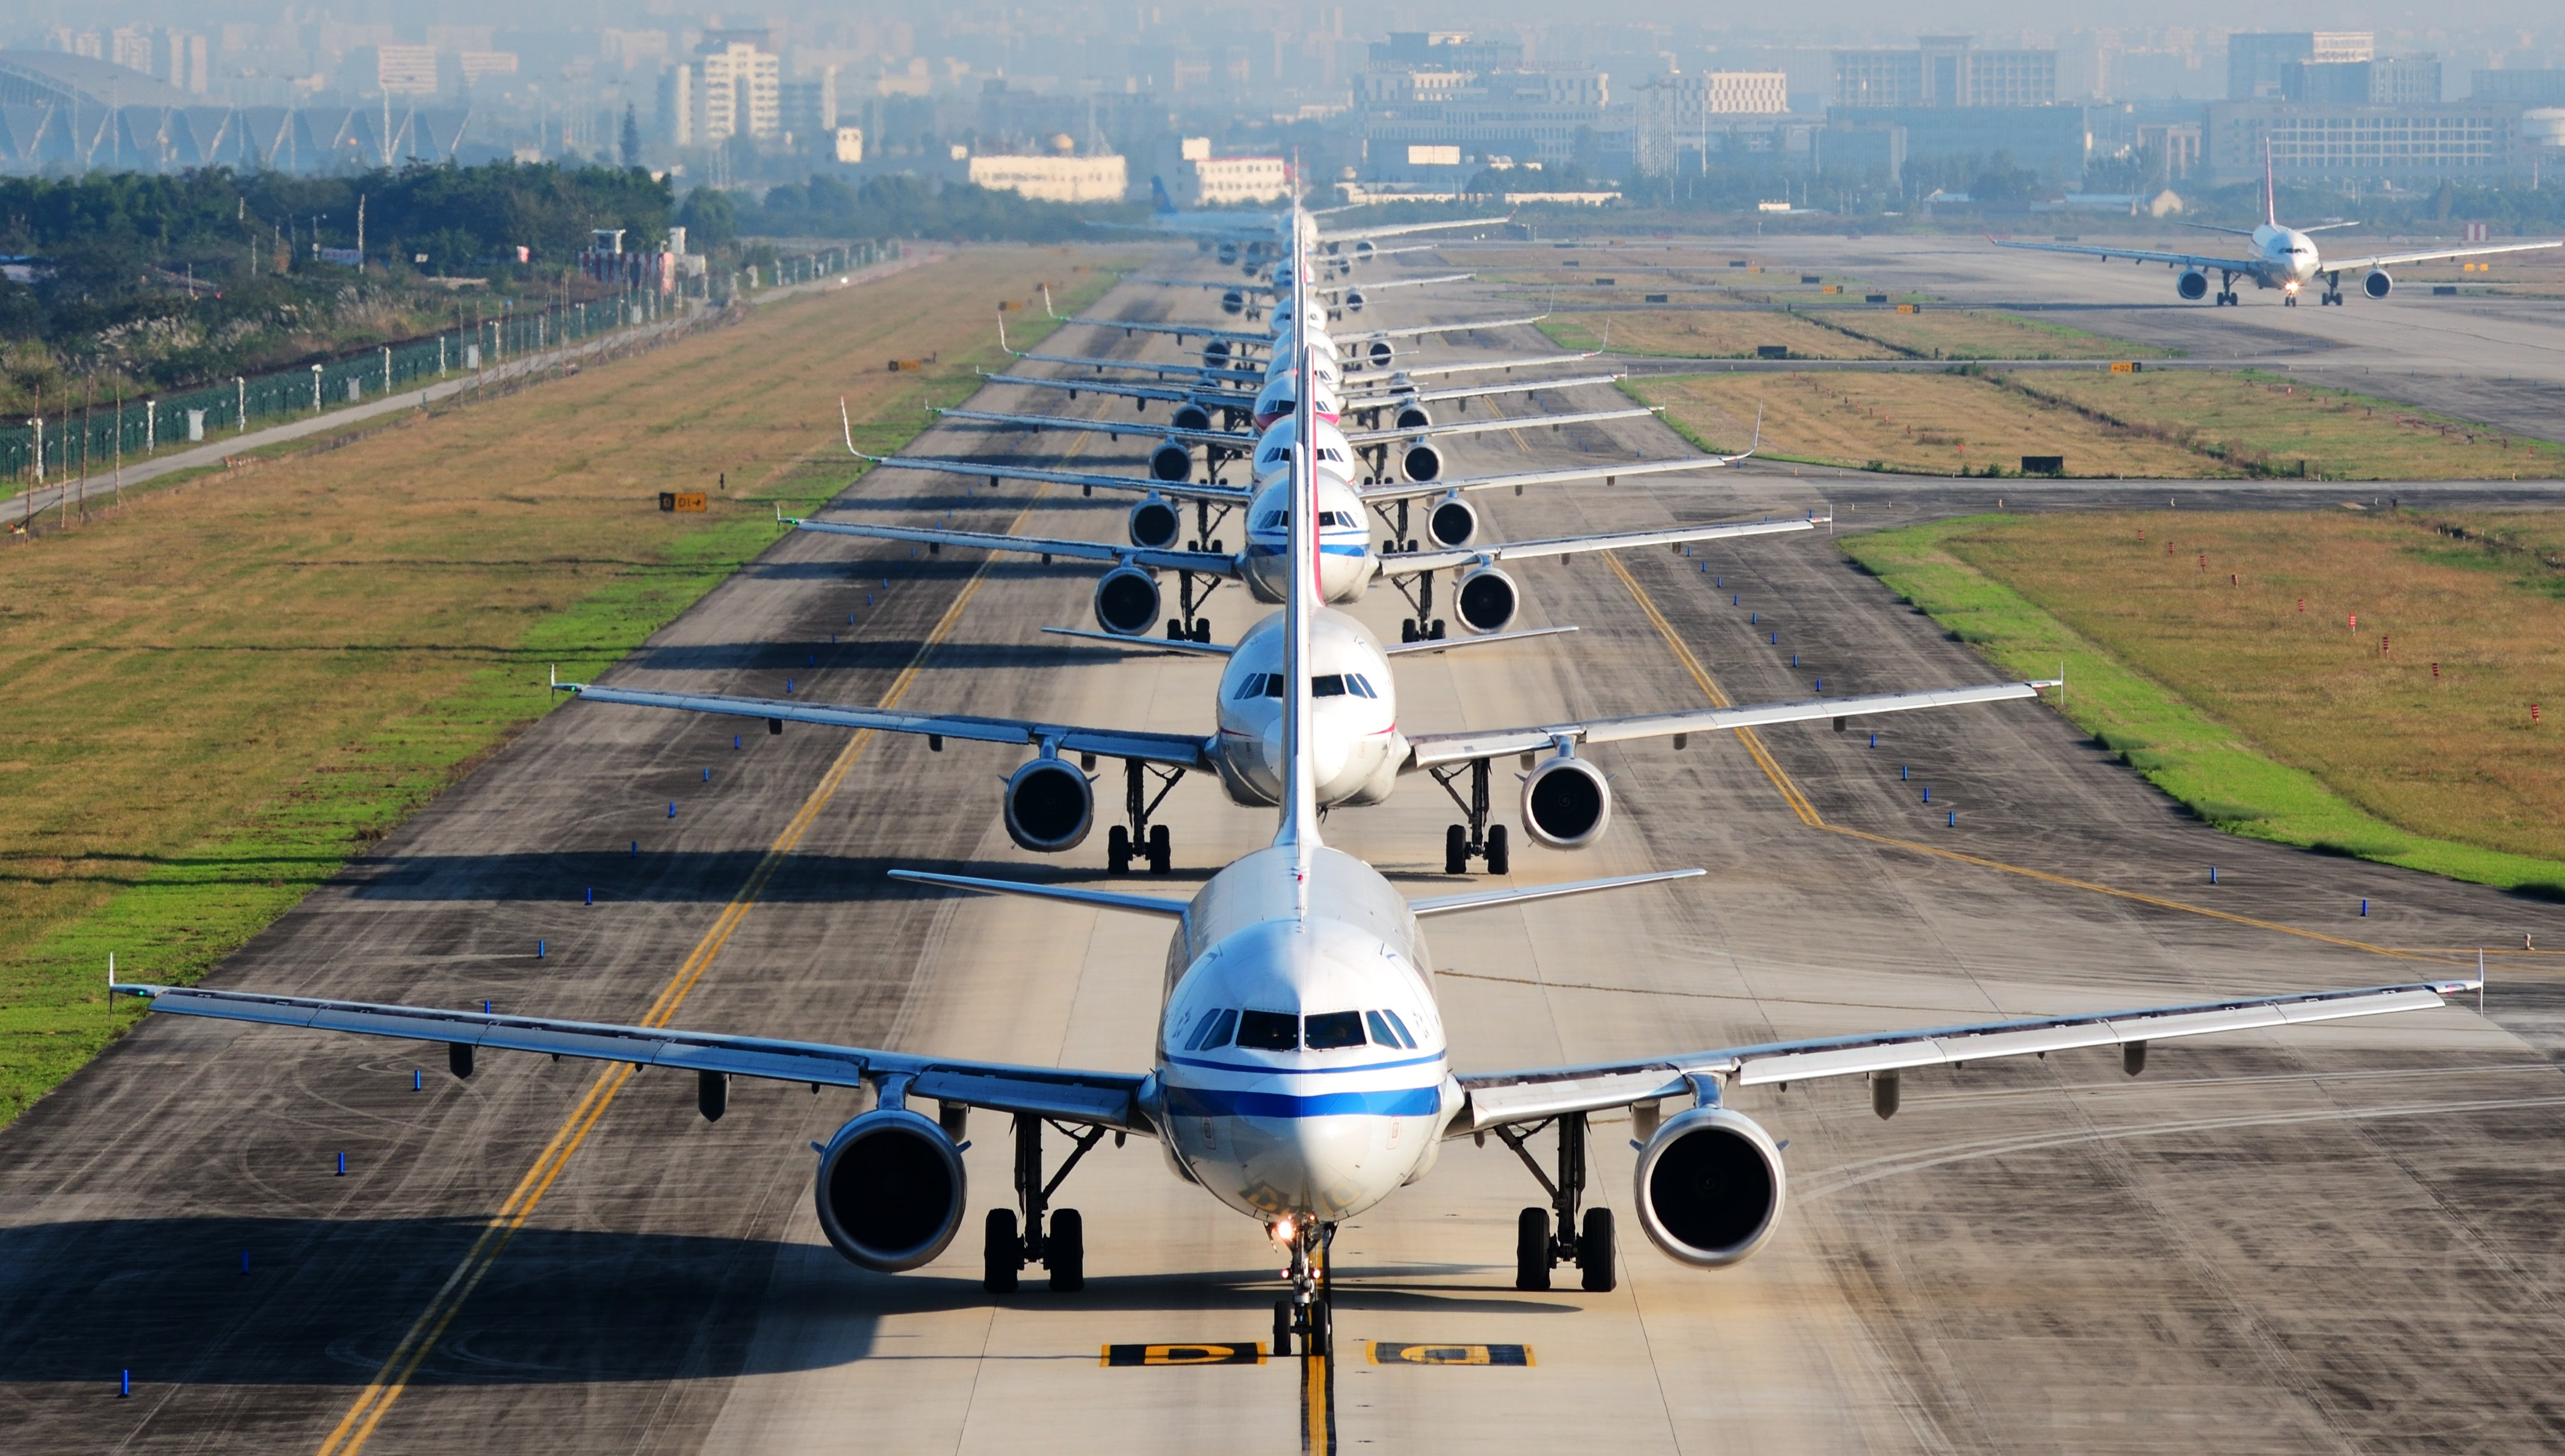 How Early Should You Get to the Airport, Really?